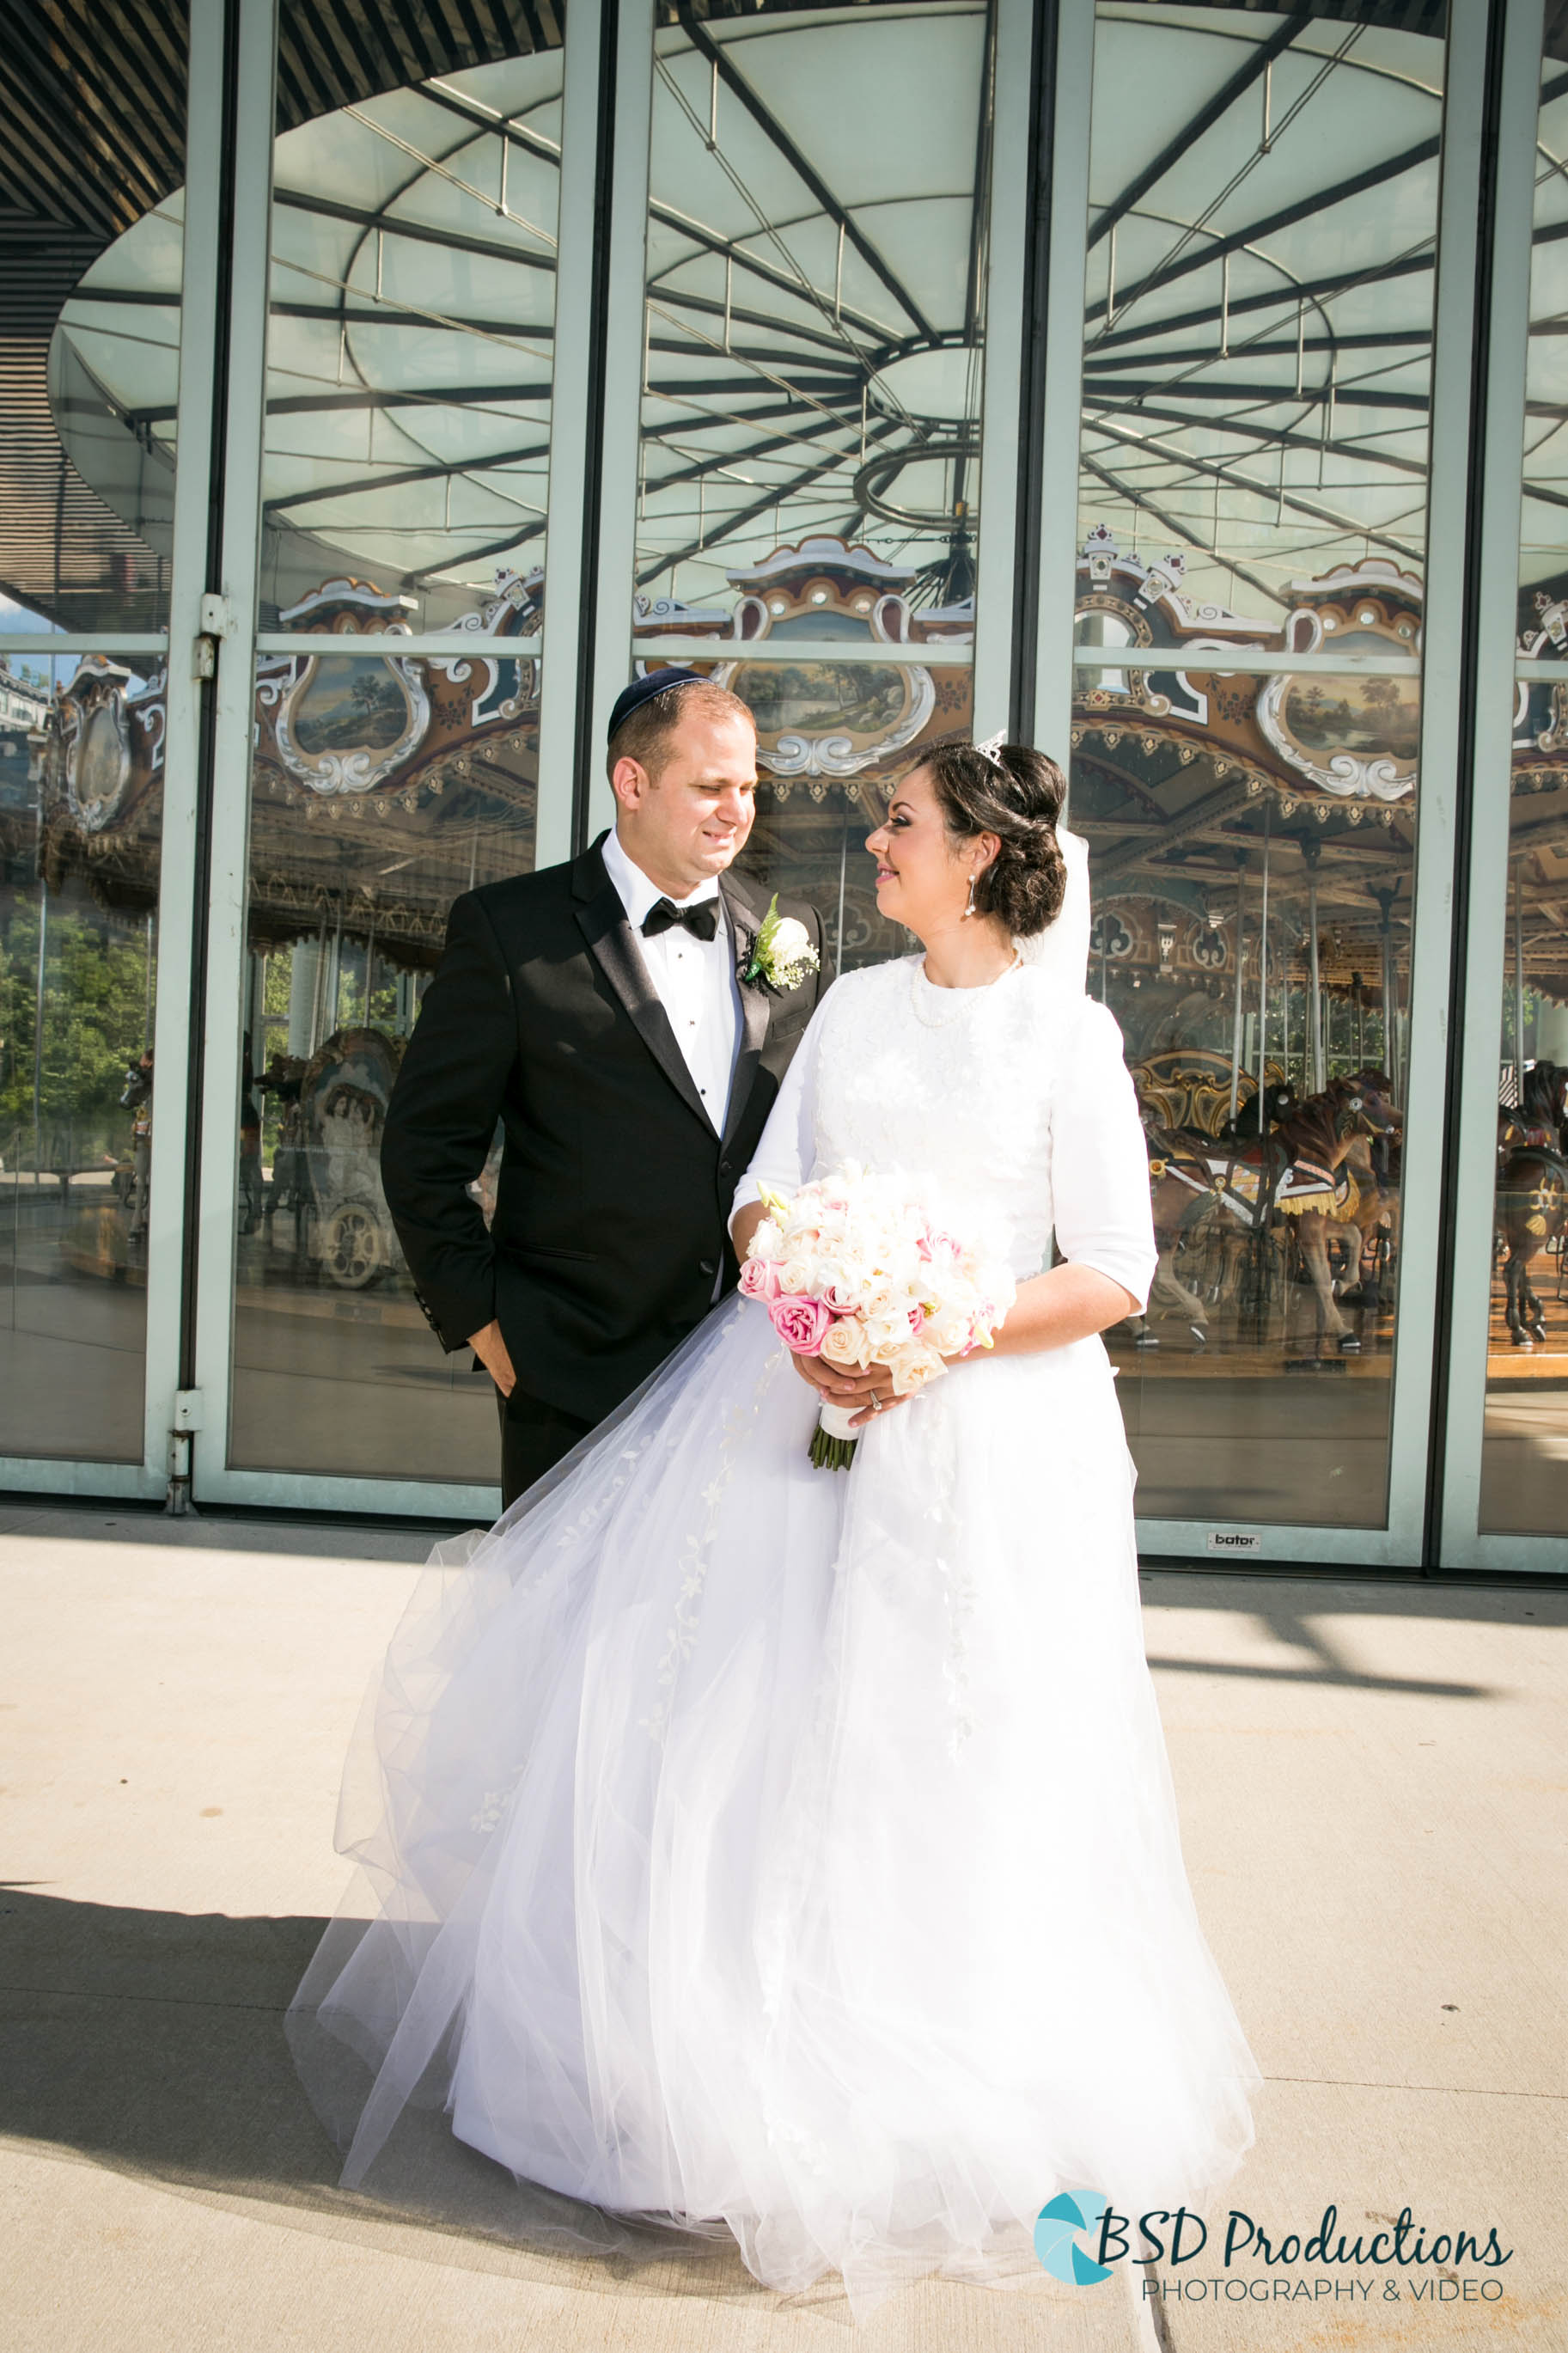 UH5A0488 Wedding – BSD Productions Photography